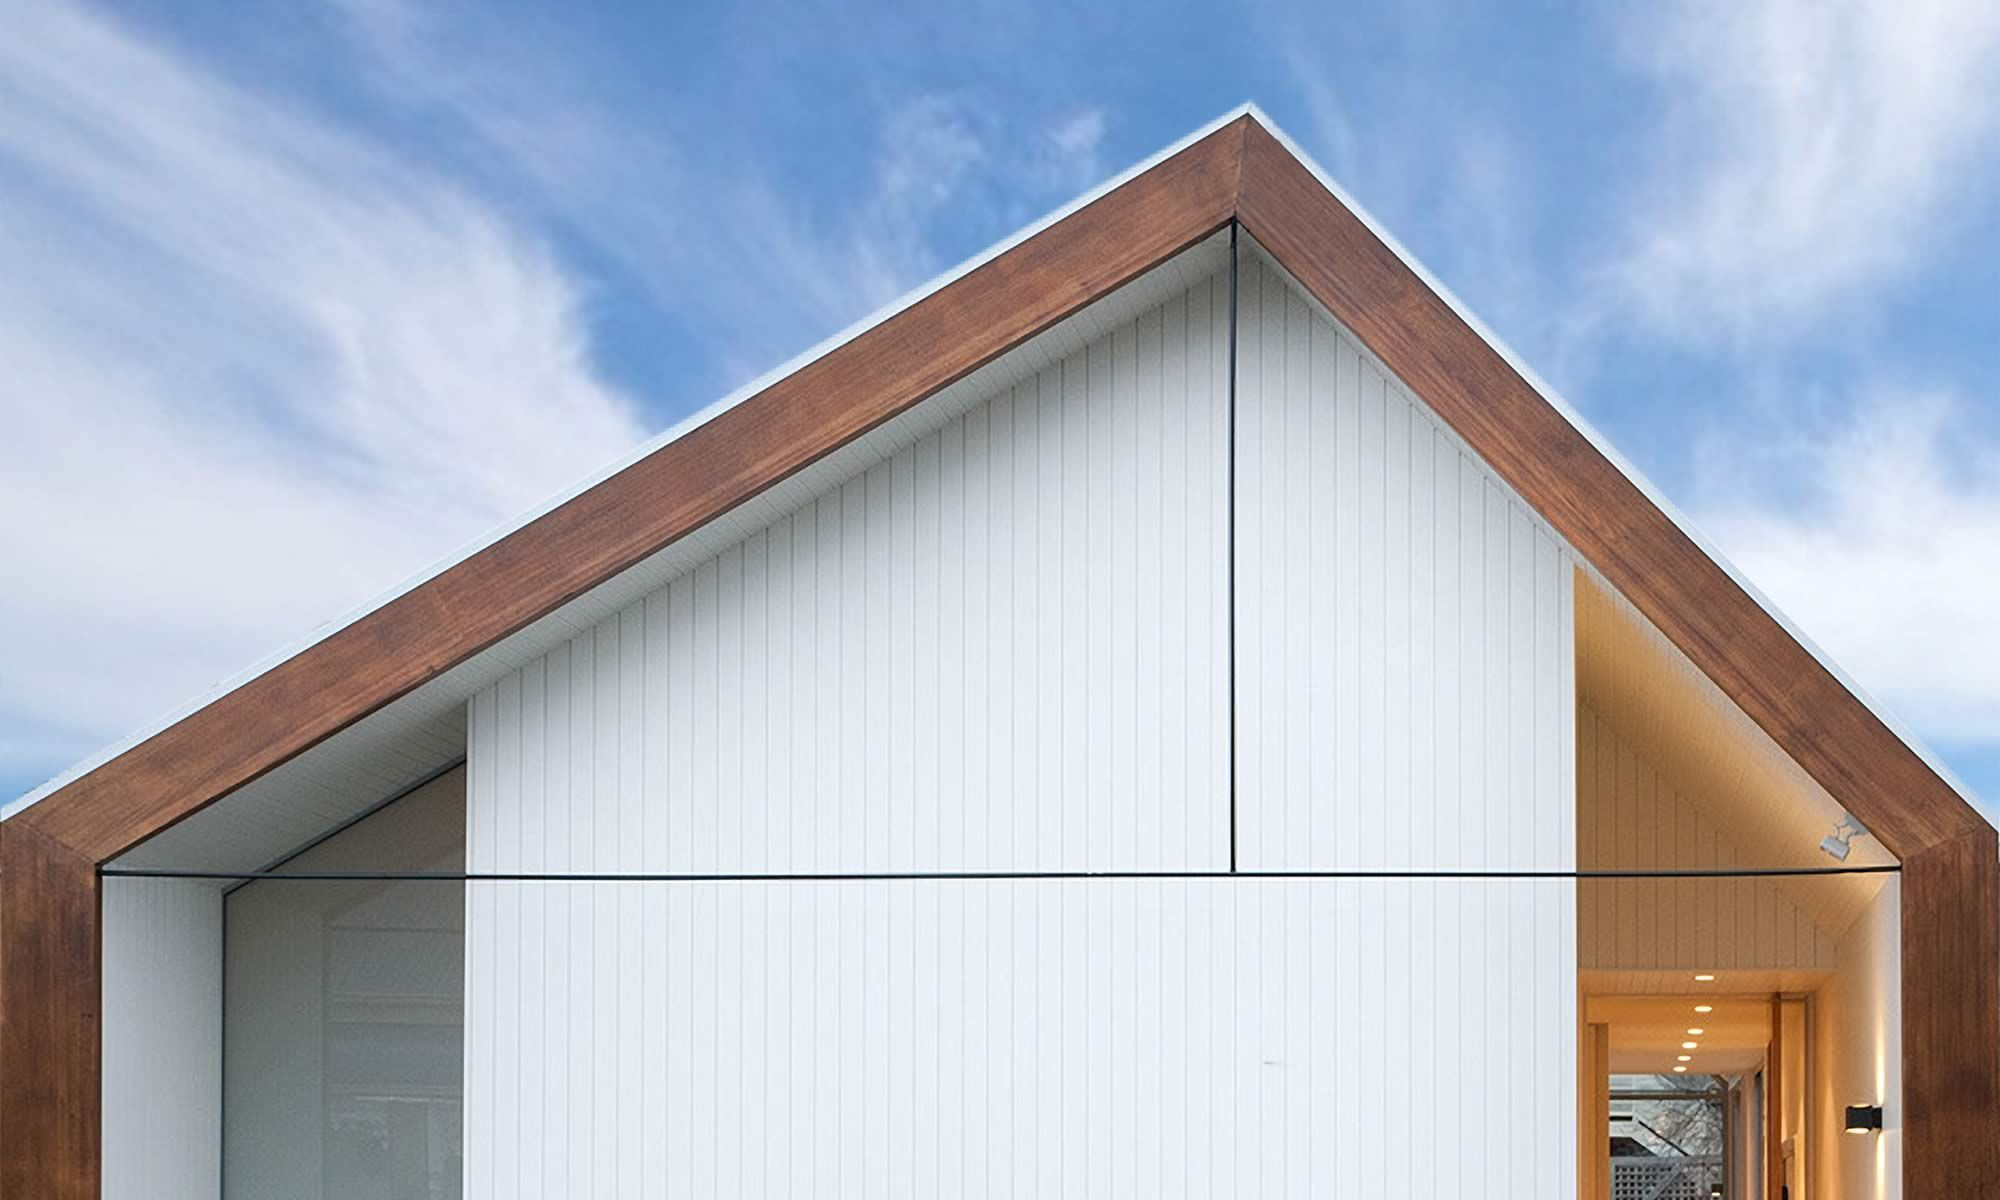 11+ Grand Metal Roofing Colors Ideas in 2020 Gable house